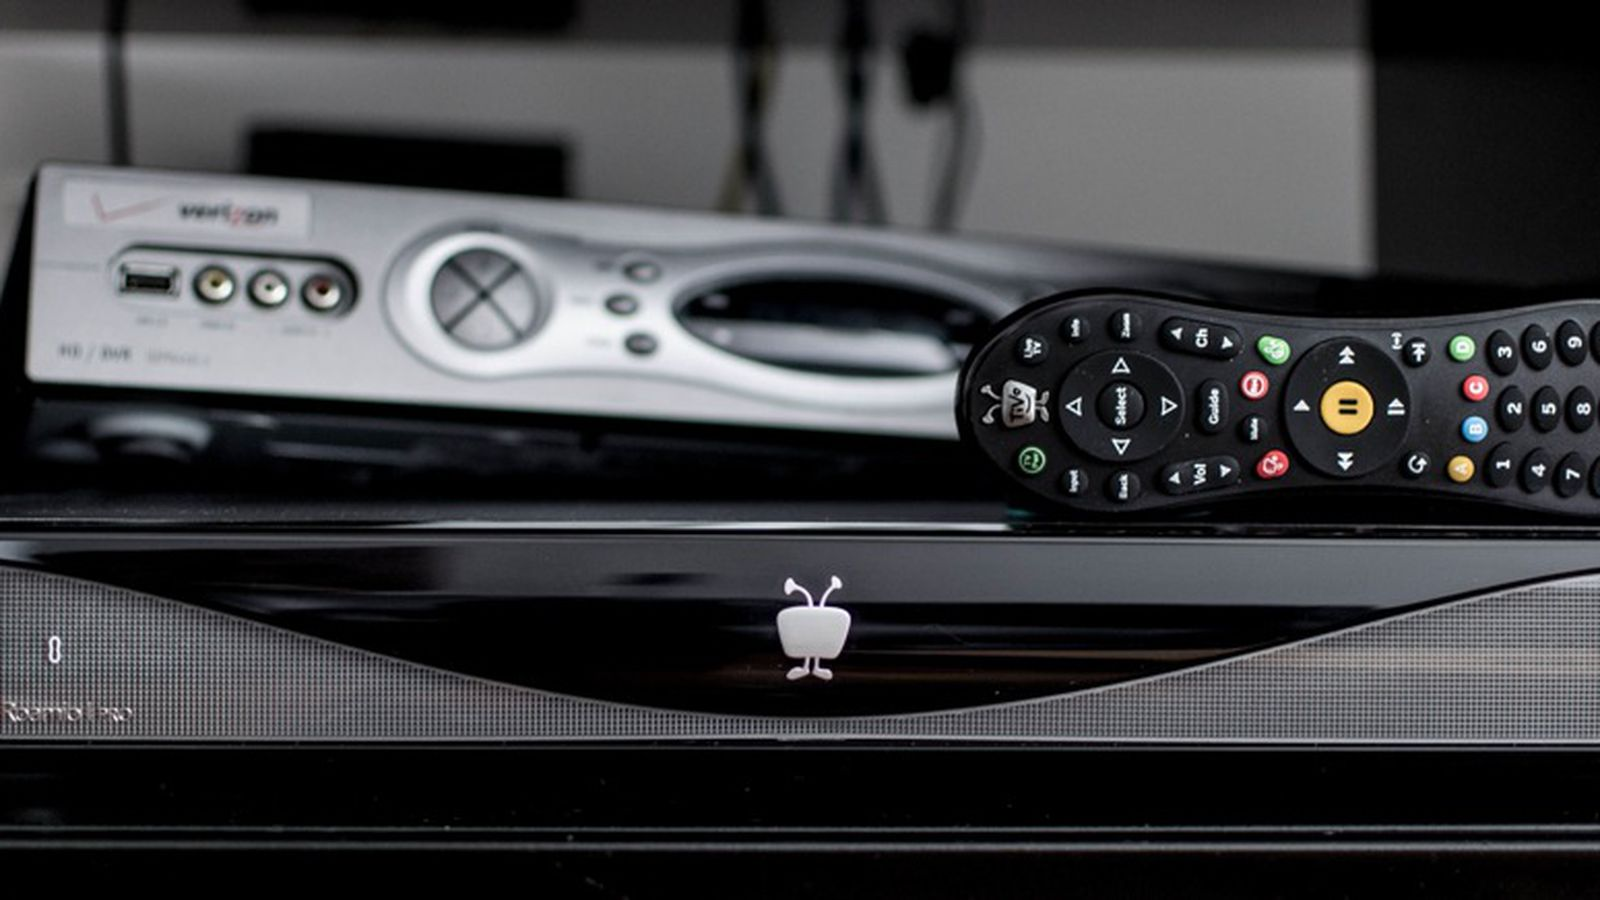 Tivo Roamio Pro Review This Is The Ultimate Cable Box Verge Manage Att U Verse Dvr Online